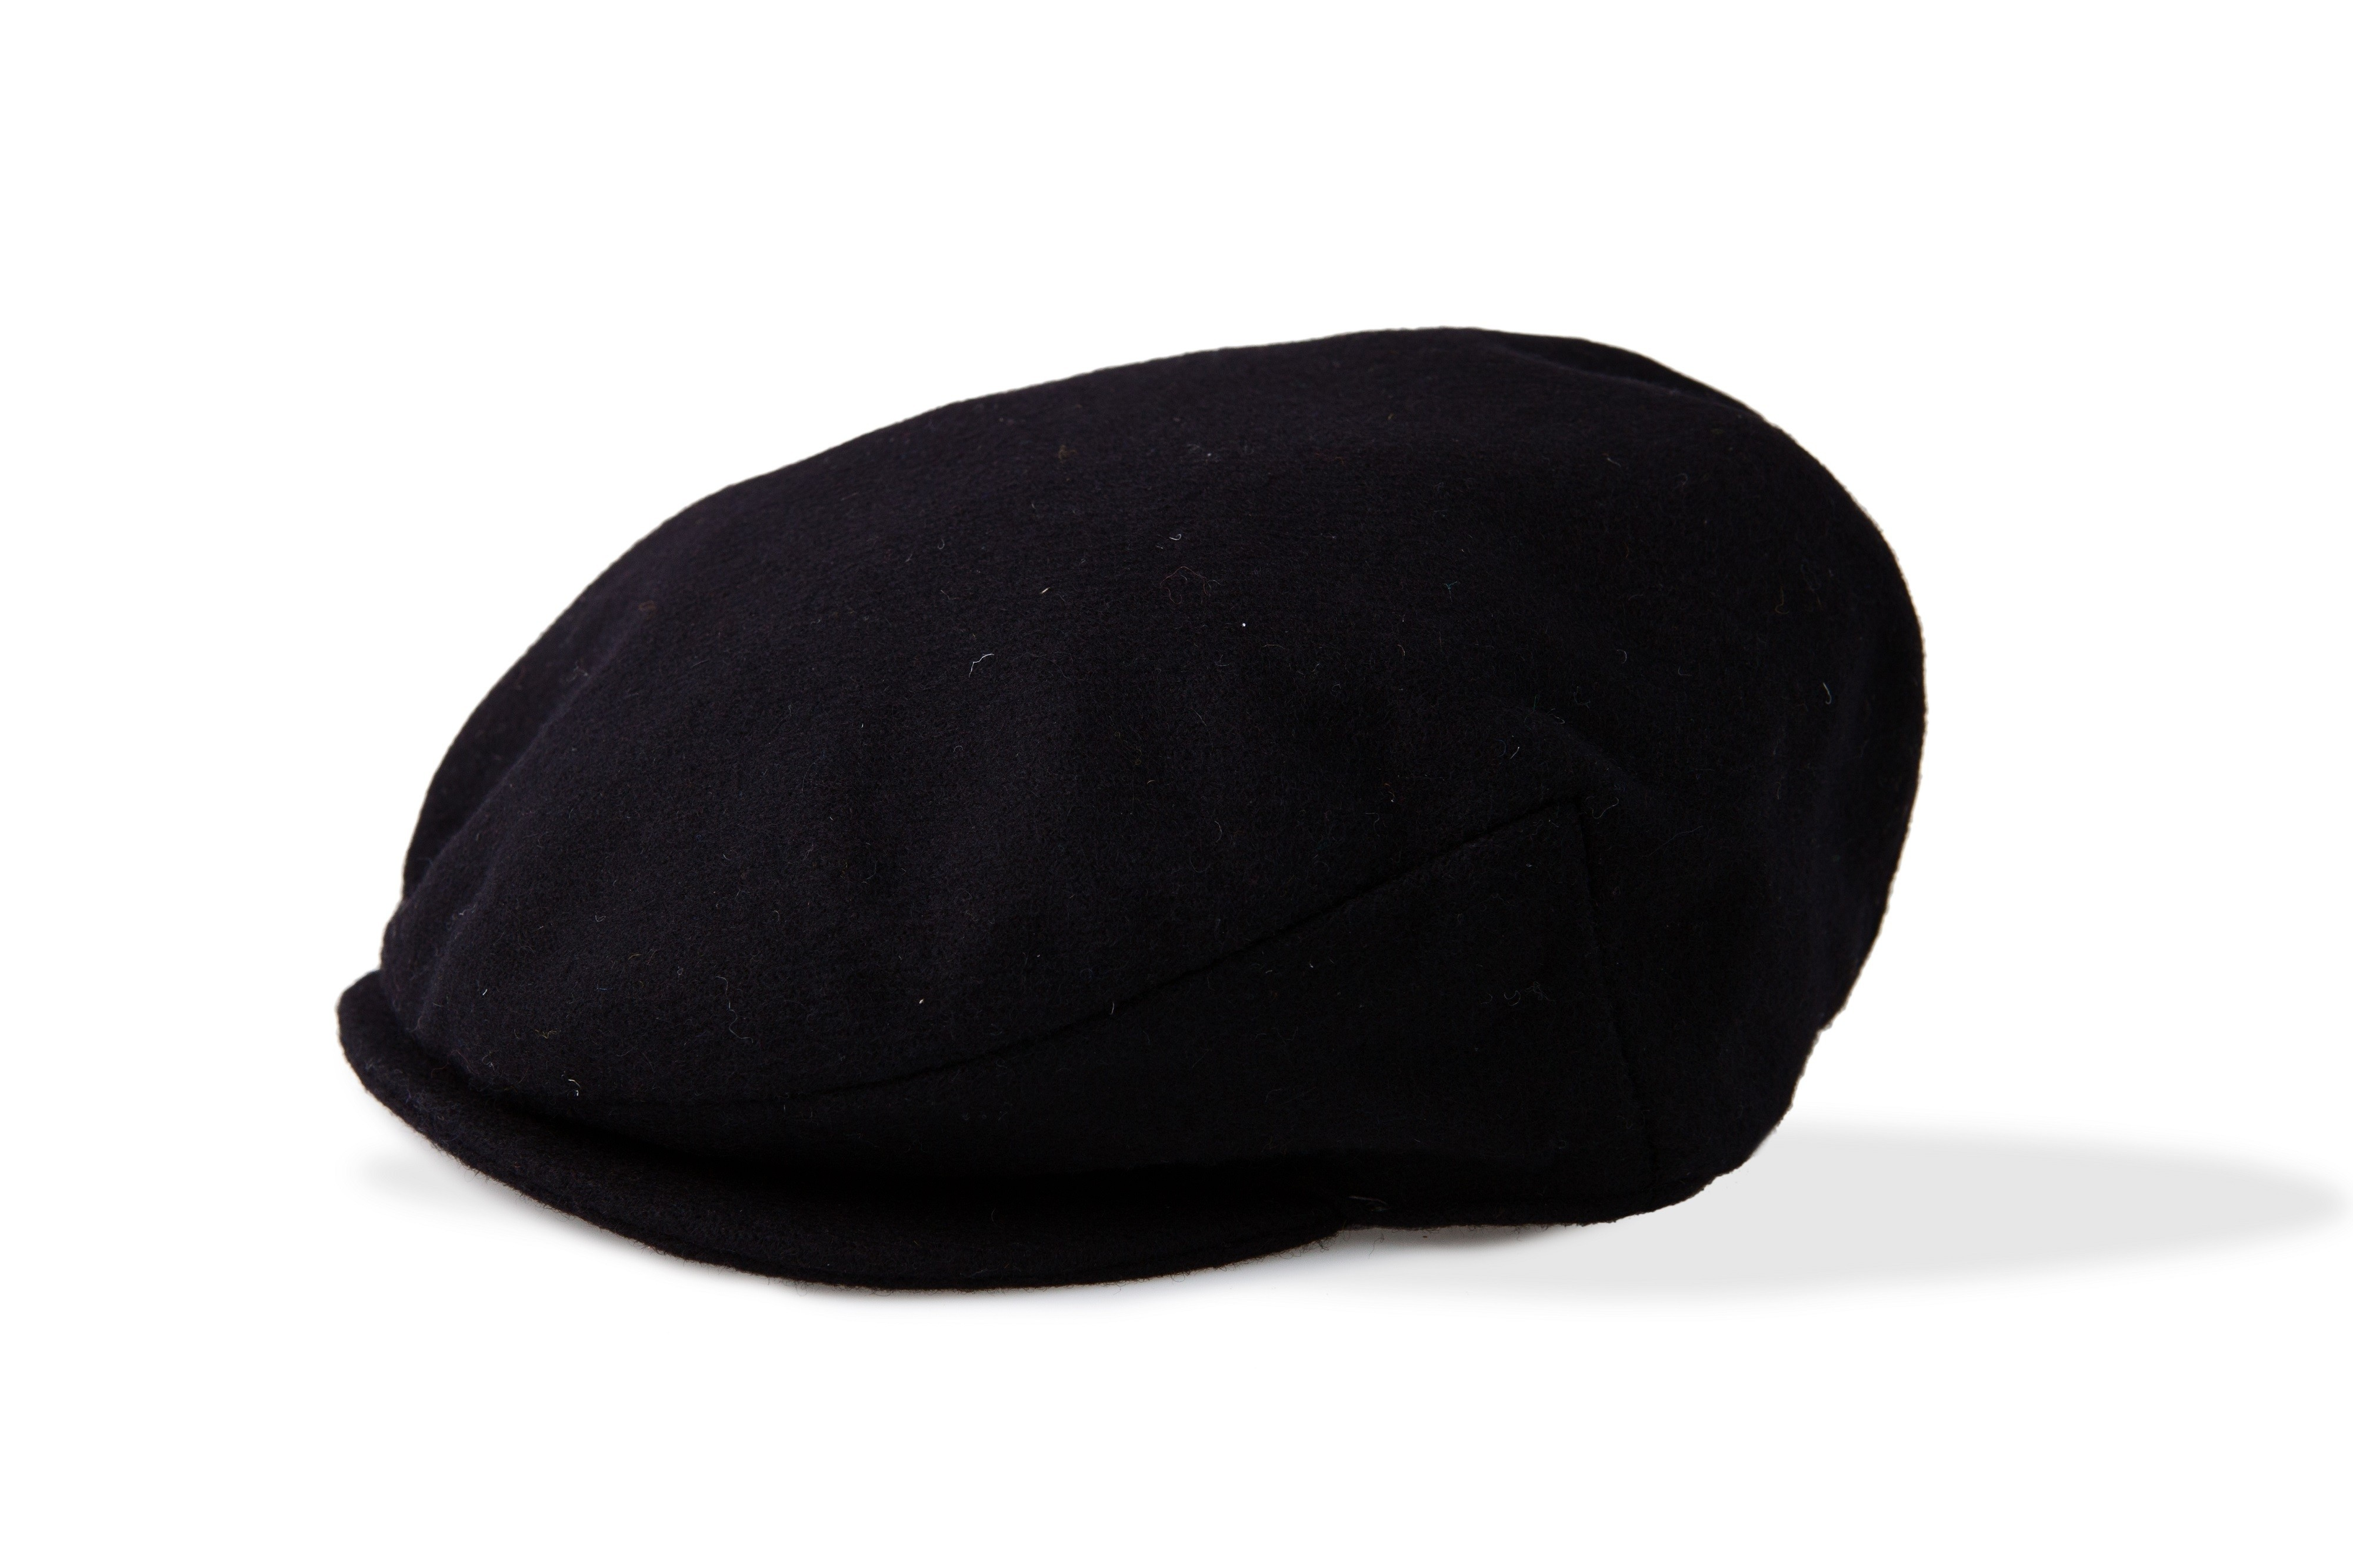 Black Wool Flat Cap for Men